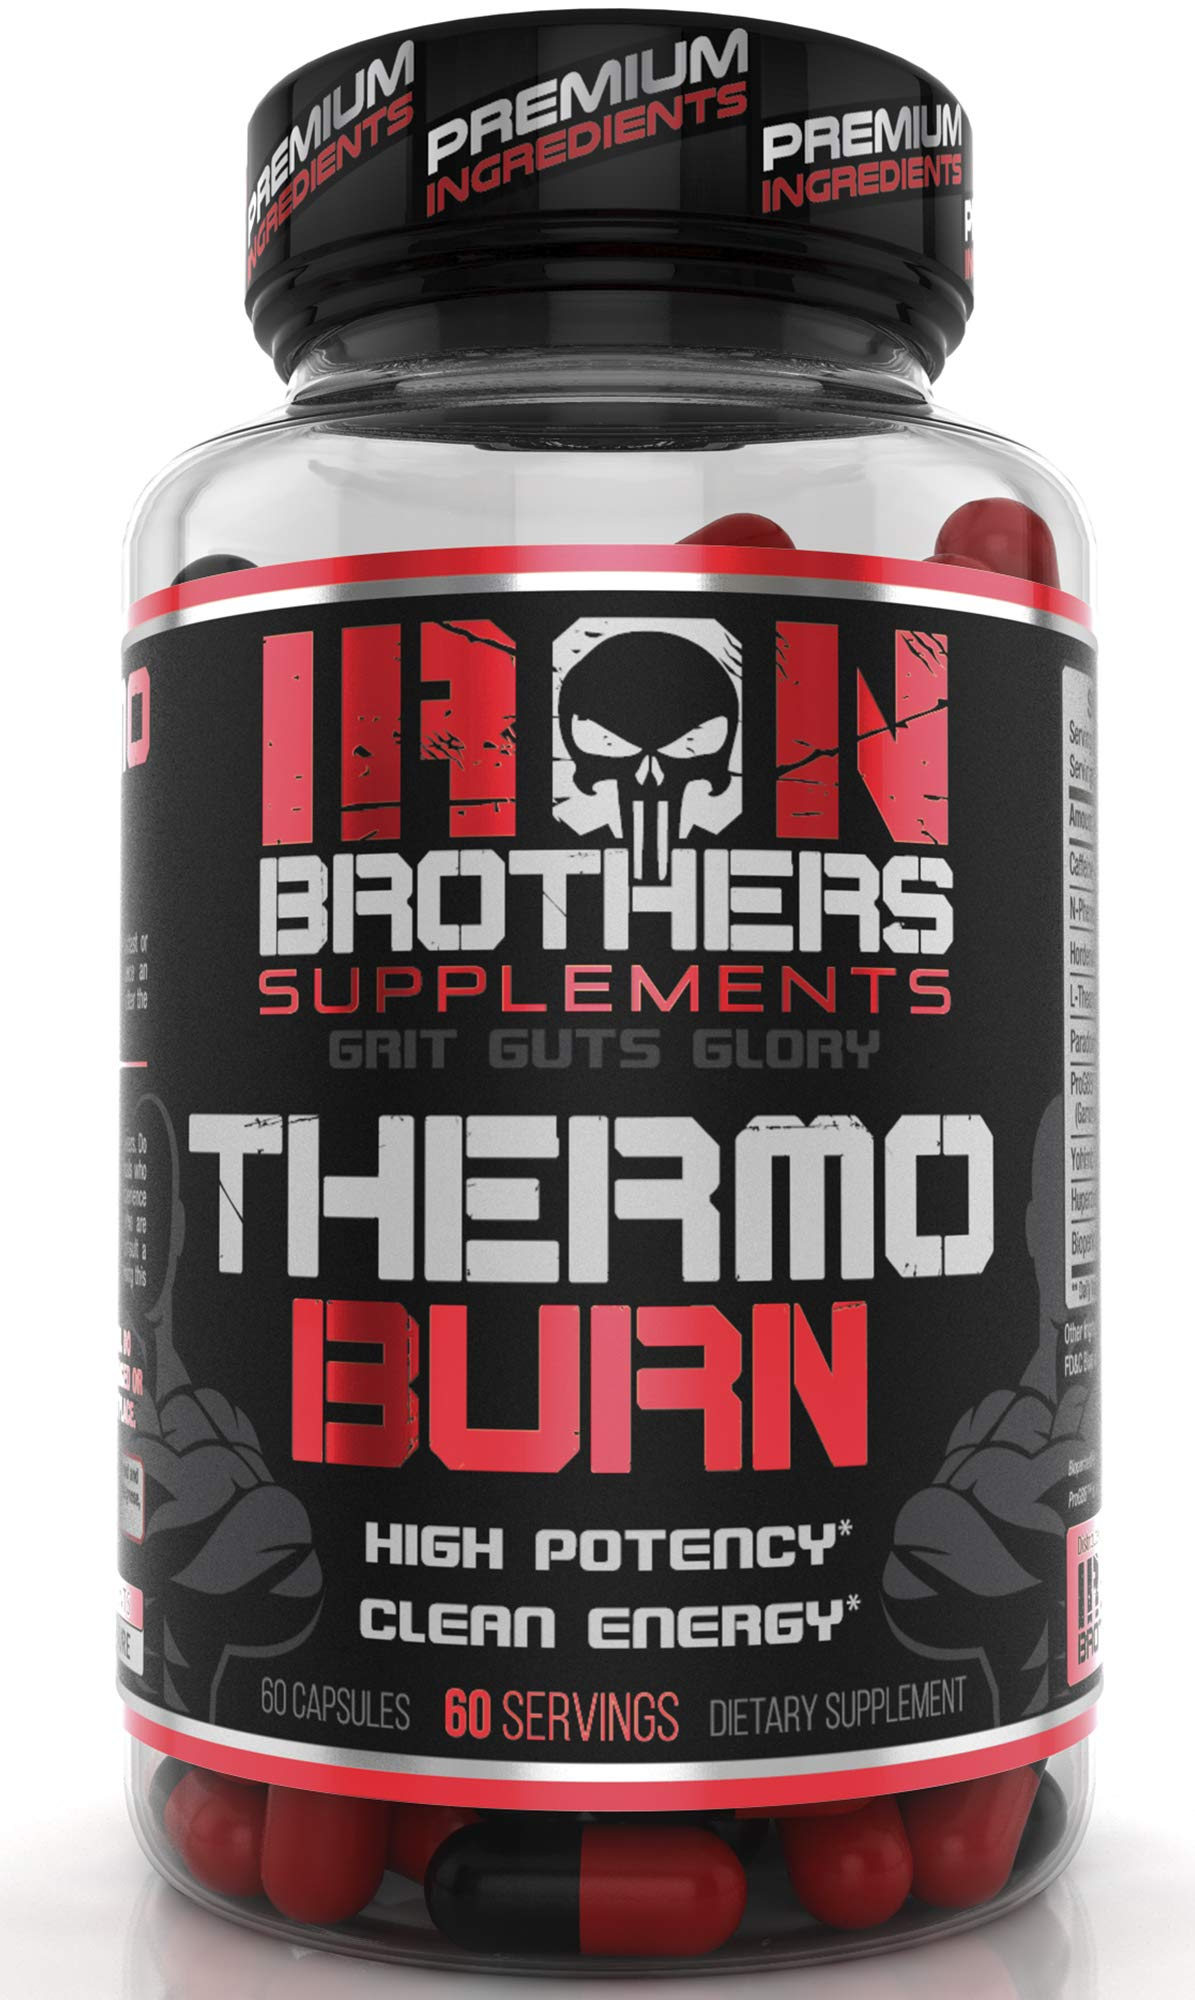 Thermogenic Fat Burners for Men/Women - Hardcore Weight Loss Pills - Appetite Suppressant- Premium Metabolism/Energy Booster - 60 Gel Capsules - Keto Friendly - Iron Brothers Thermo Burn by Iron Brothers Supplements